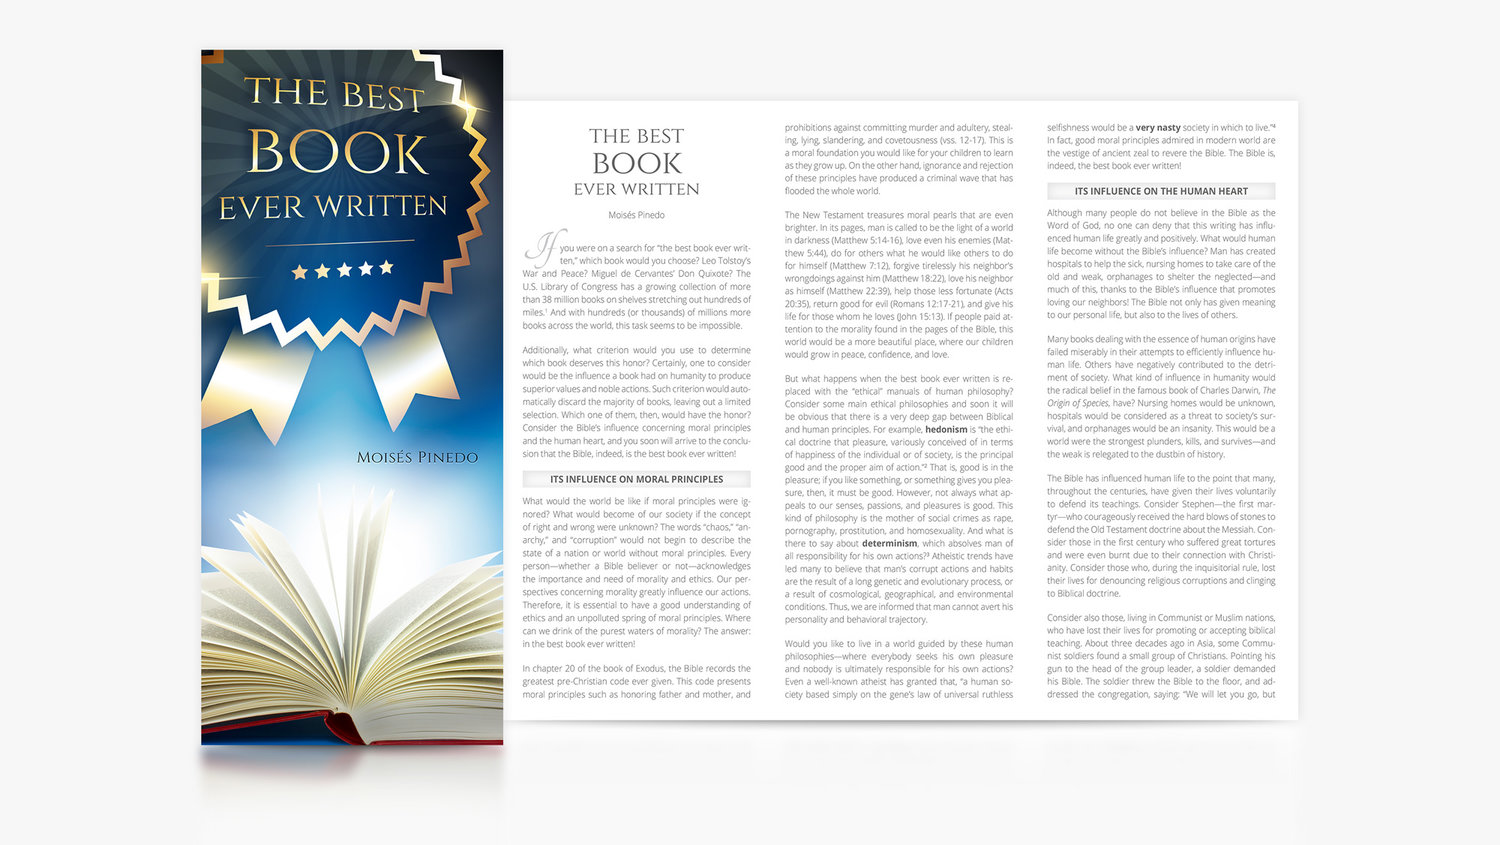 The Best Book Ever Written — EB Global: Enfoque Bíblico / Bible Focus